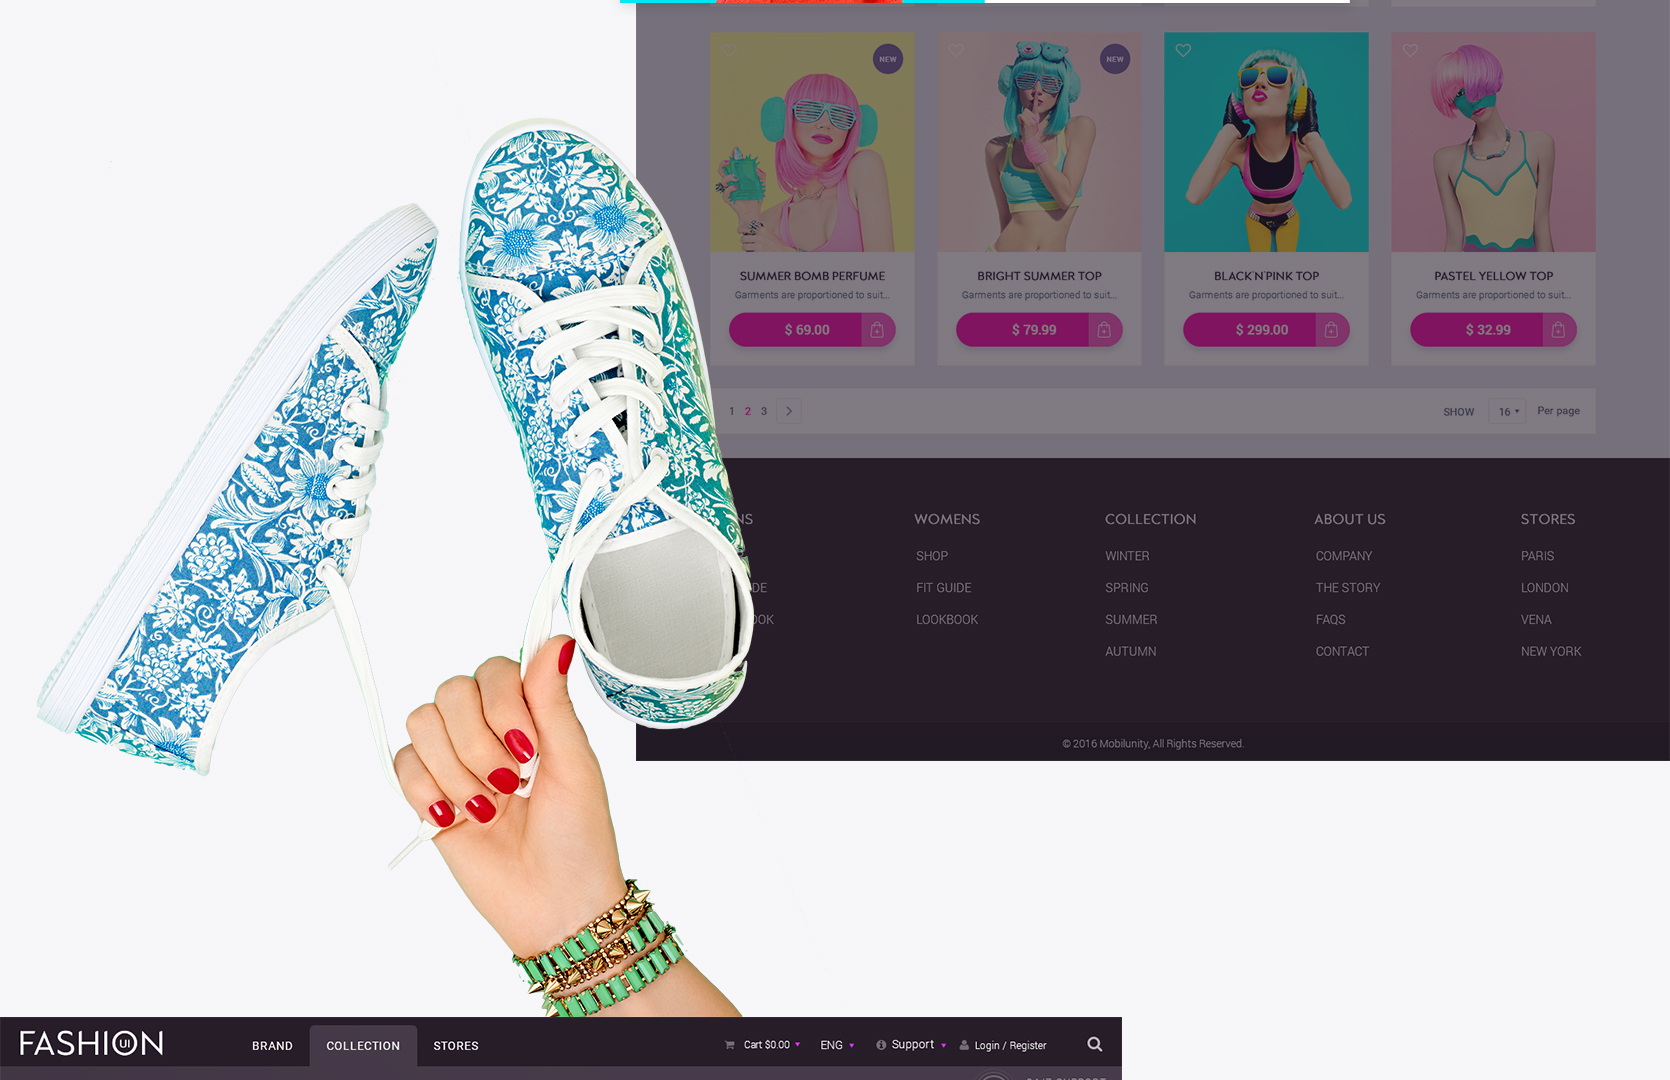 Best fashion ecommerce sites 2018